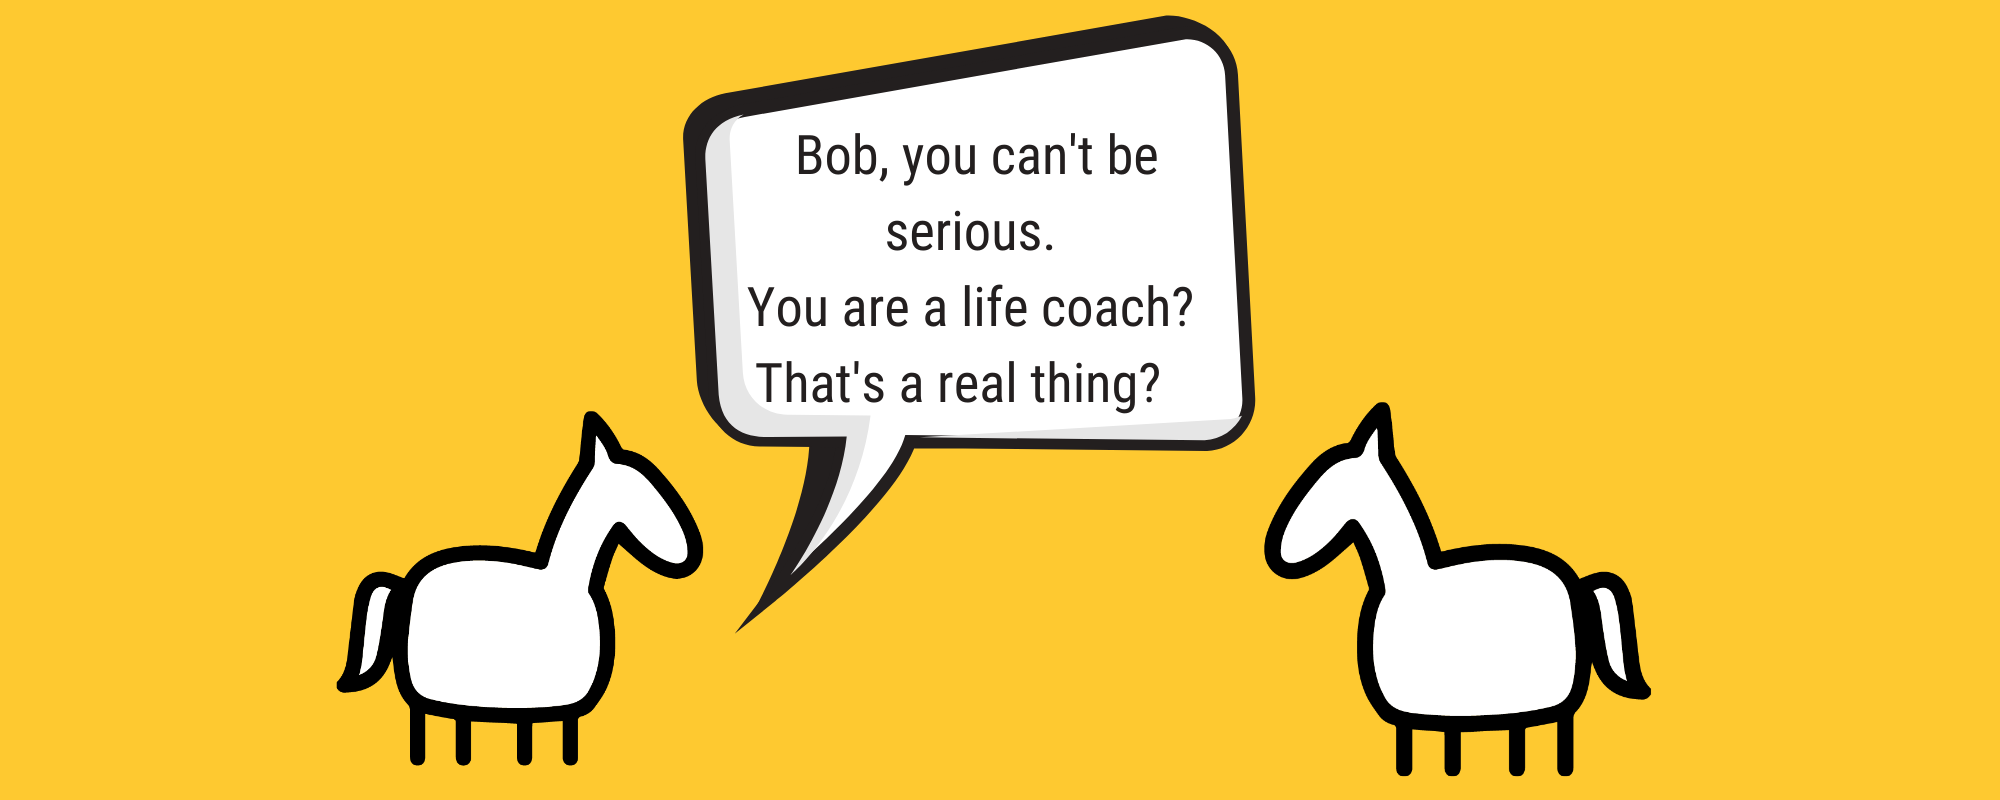 People Don't Pay for Life Coaching (Part 1)